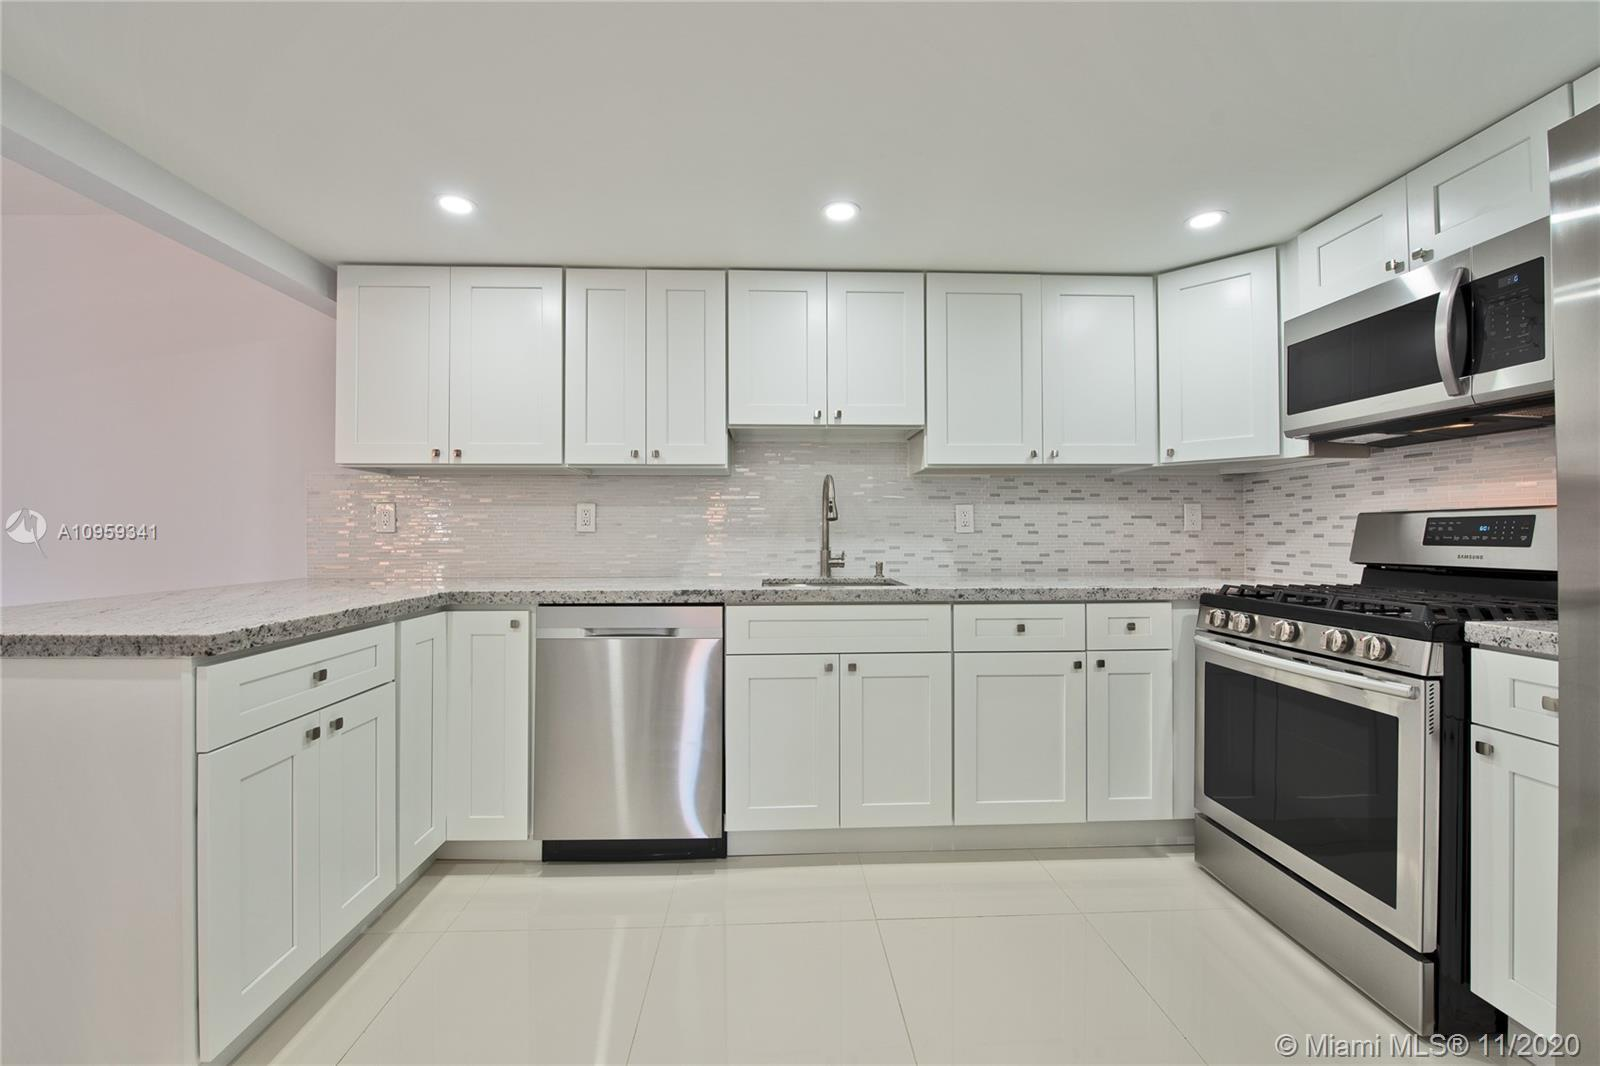 Beautifully remodeled townhome in Snapper Village! features 3/2 tile flooring, remodeled kitchen and baths, all bedrooms upstairs, 2 patios one accessed through living room the other through dining room, gas stove and water heater, washer/dryer in the unit, community has pool, tennis, child play area, guard gate and so much more!Maintenance fee includes: Water, cable, internet, insurance, guard/gate, common area maintenance, pool, club house, window and door repairs, fence.